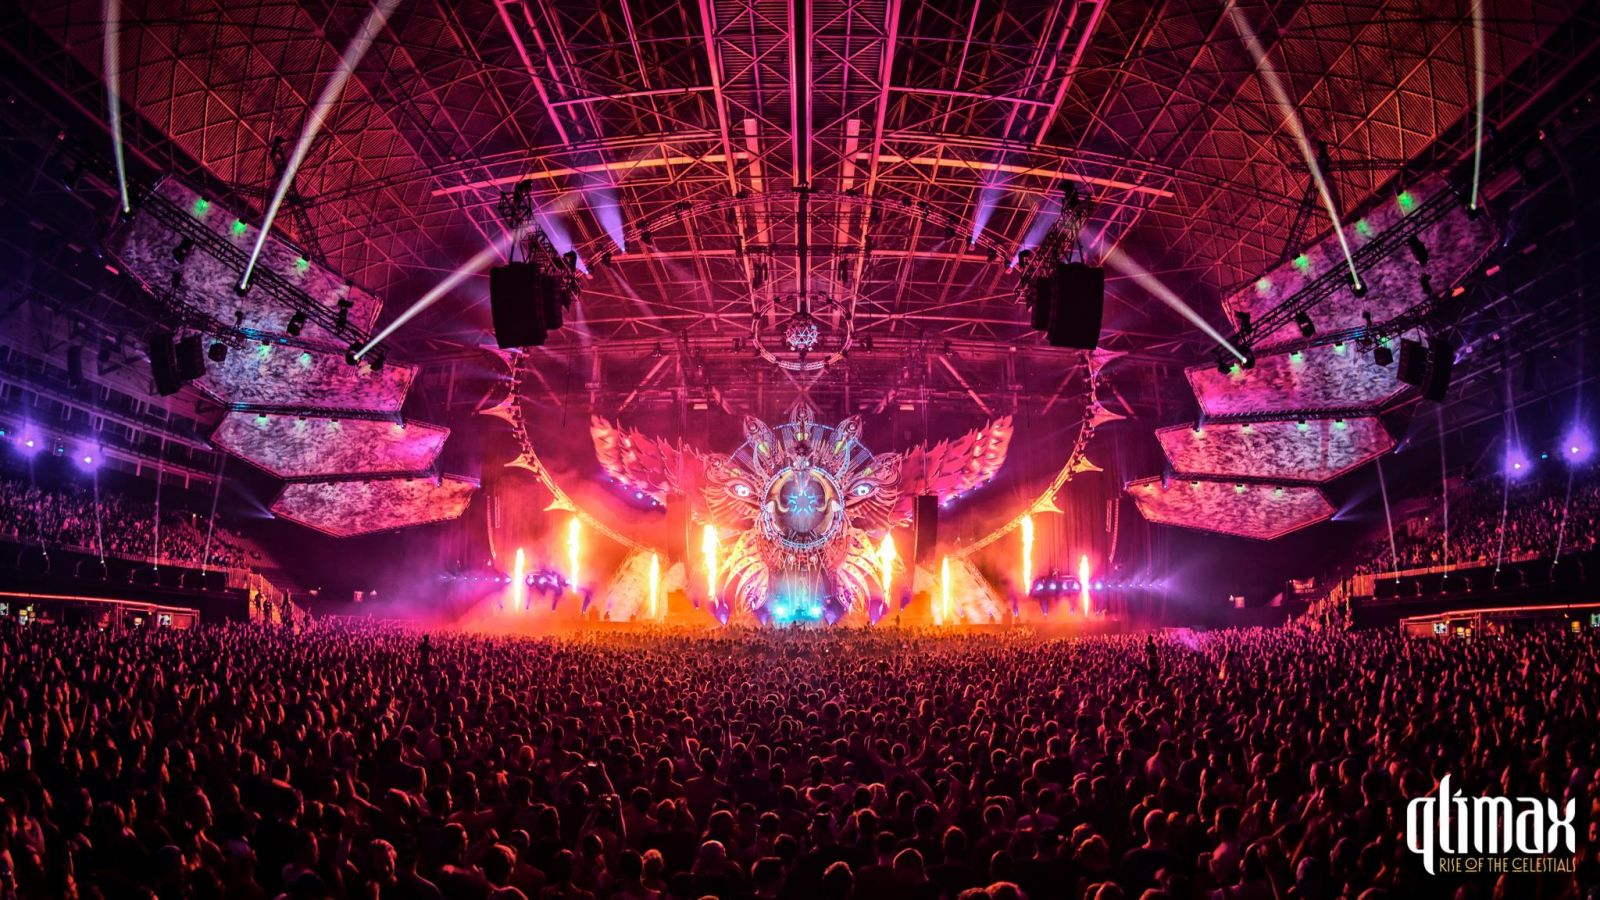 PARTY REPORT: Qlimax 2016 - Rise of the Celestials